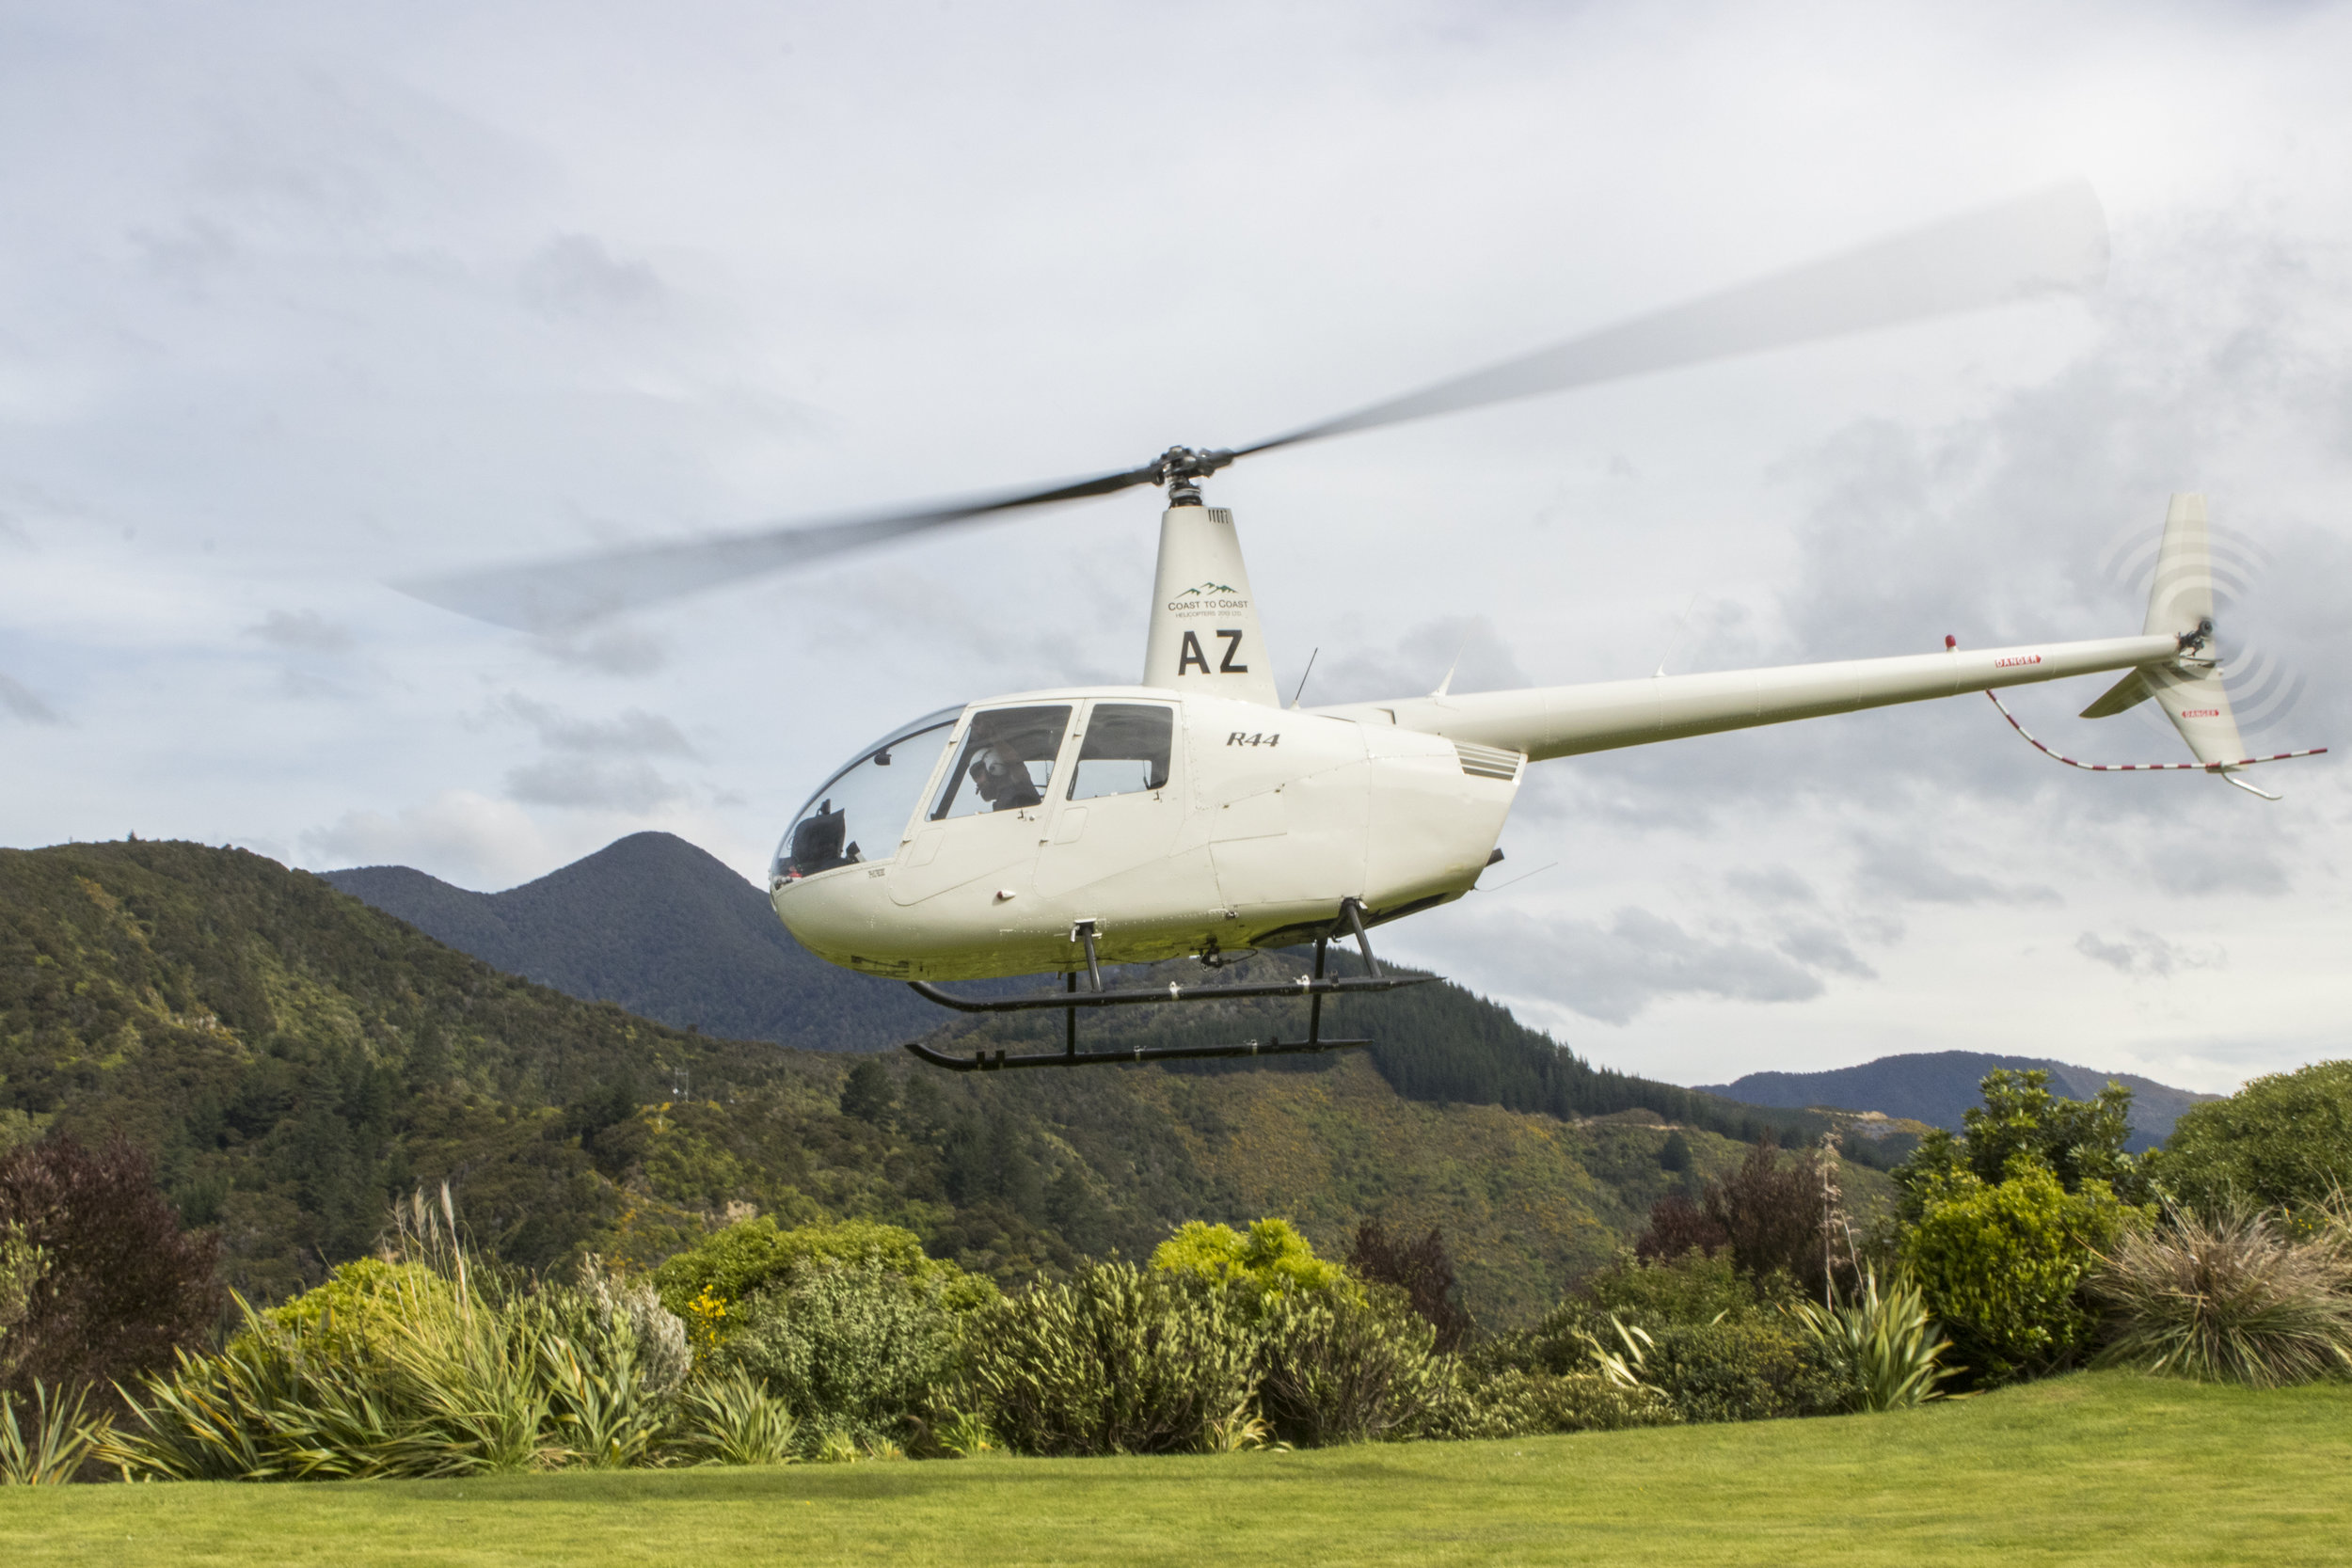 belandbeau_family adventure new zealand helicopter ride with kids_10.jpg